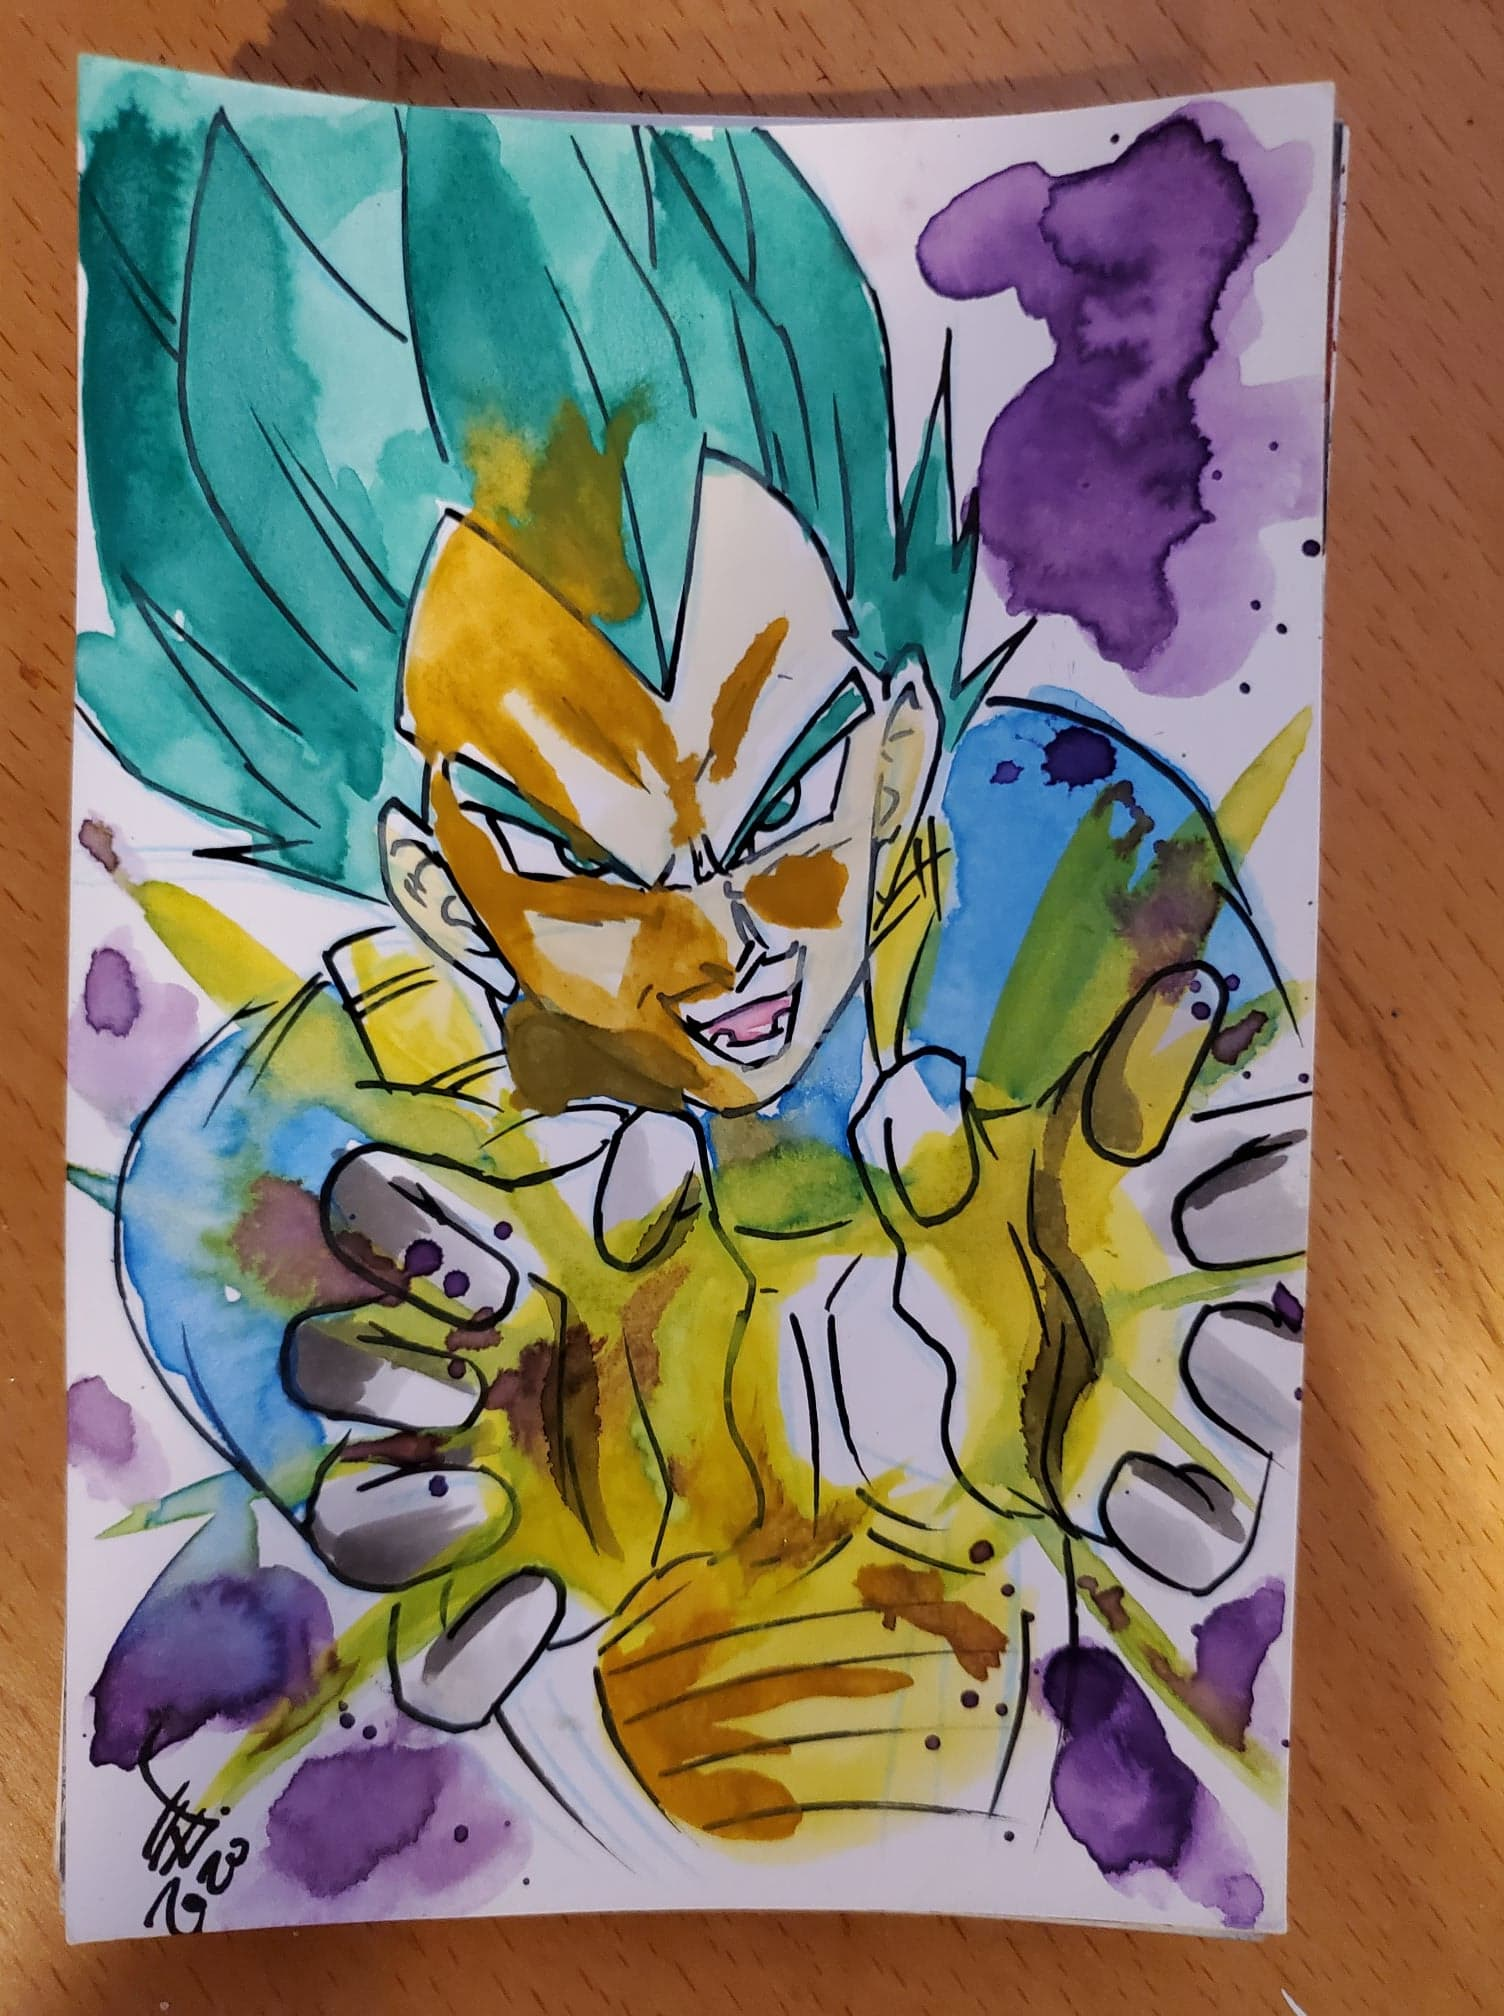 Vegeta Watercolor Card (Dragonball Super)